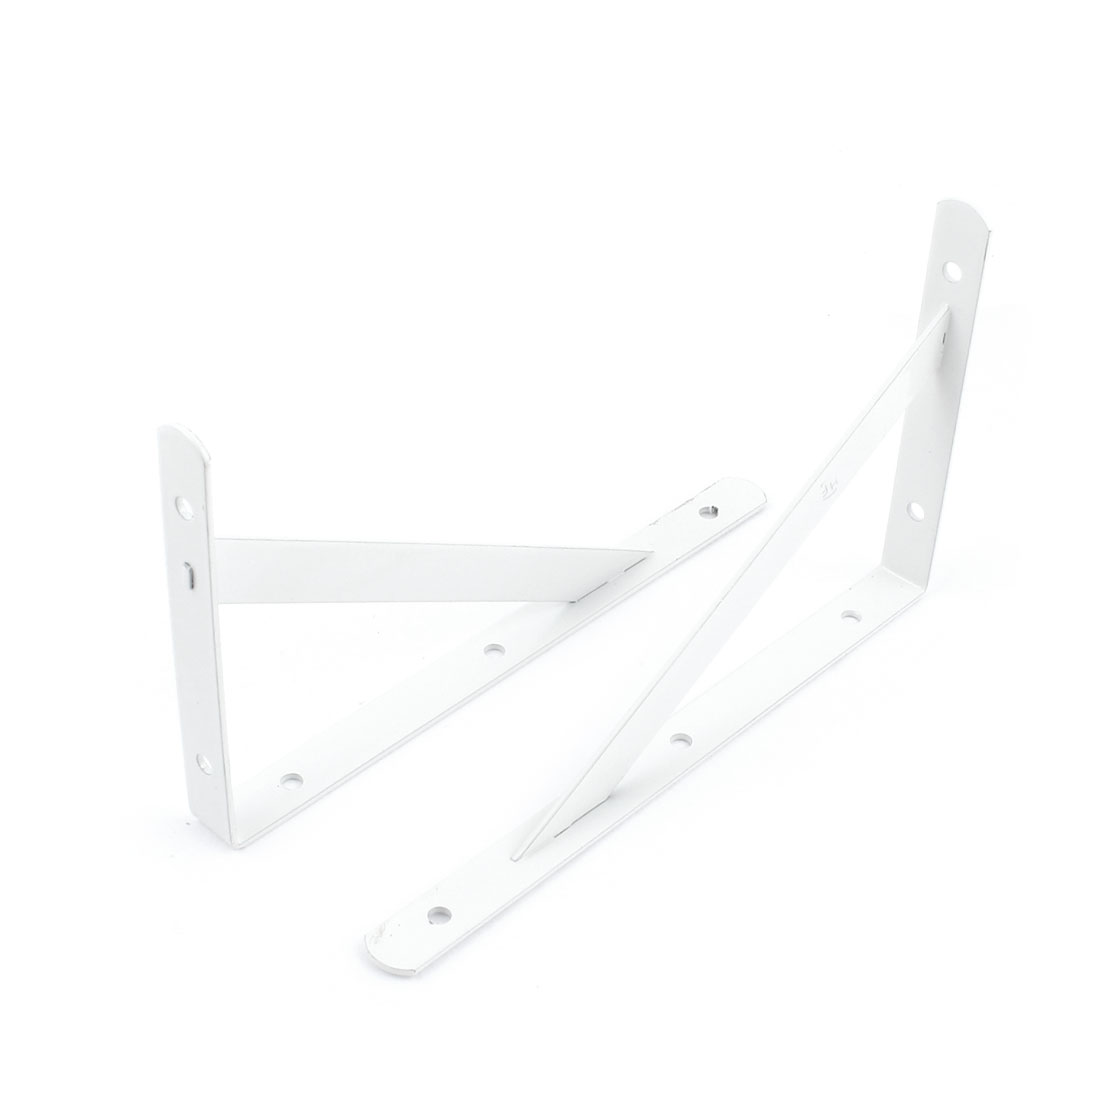 2 Pcs 90 Degree Wall Mount Support Shelf Bracket Frame 200mm x 120mm